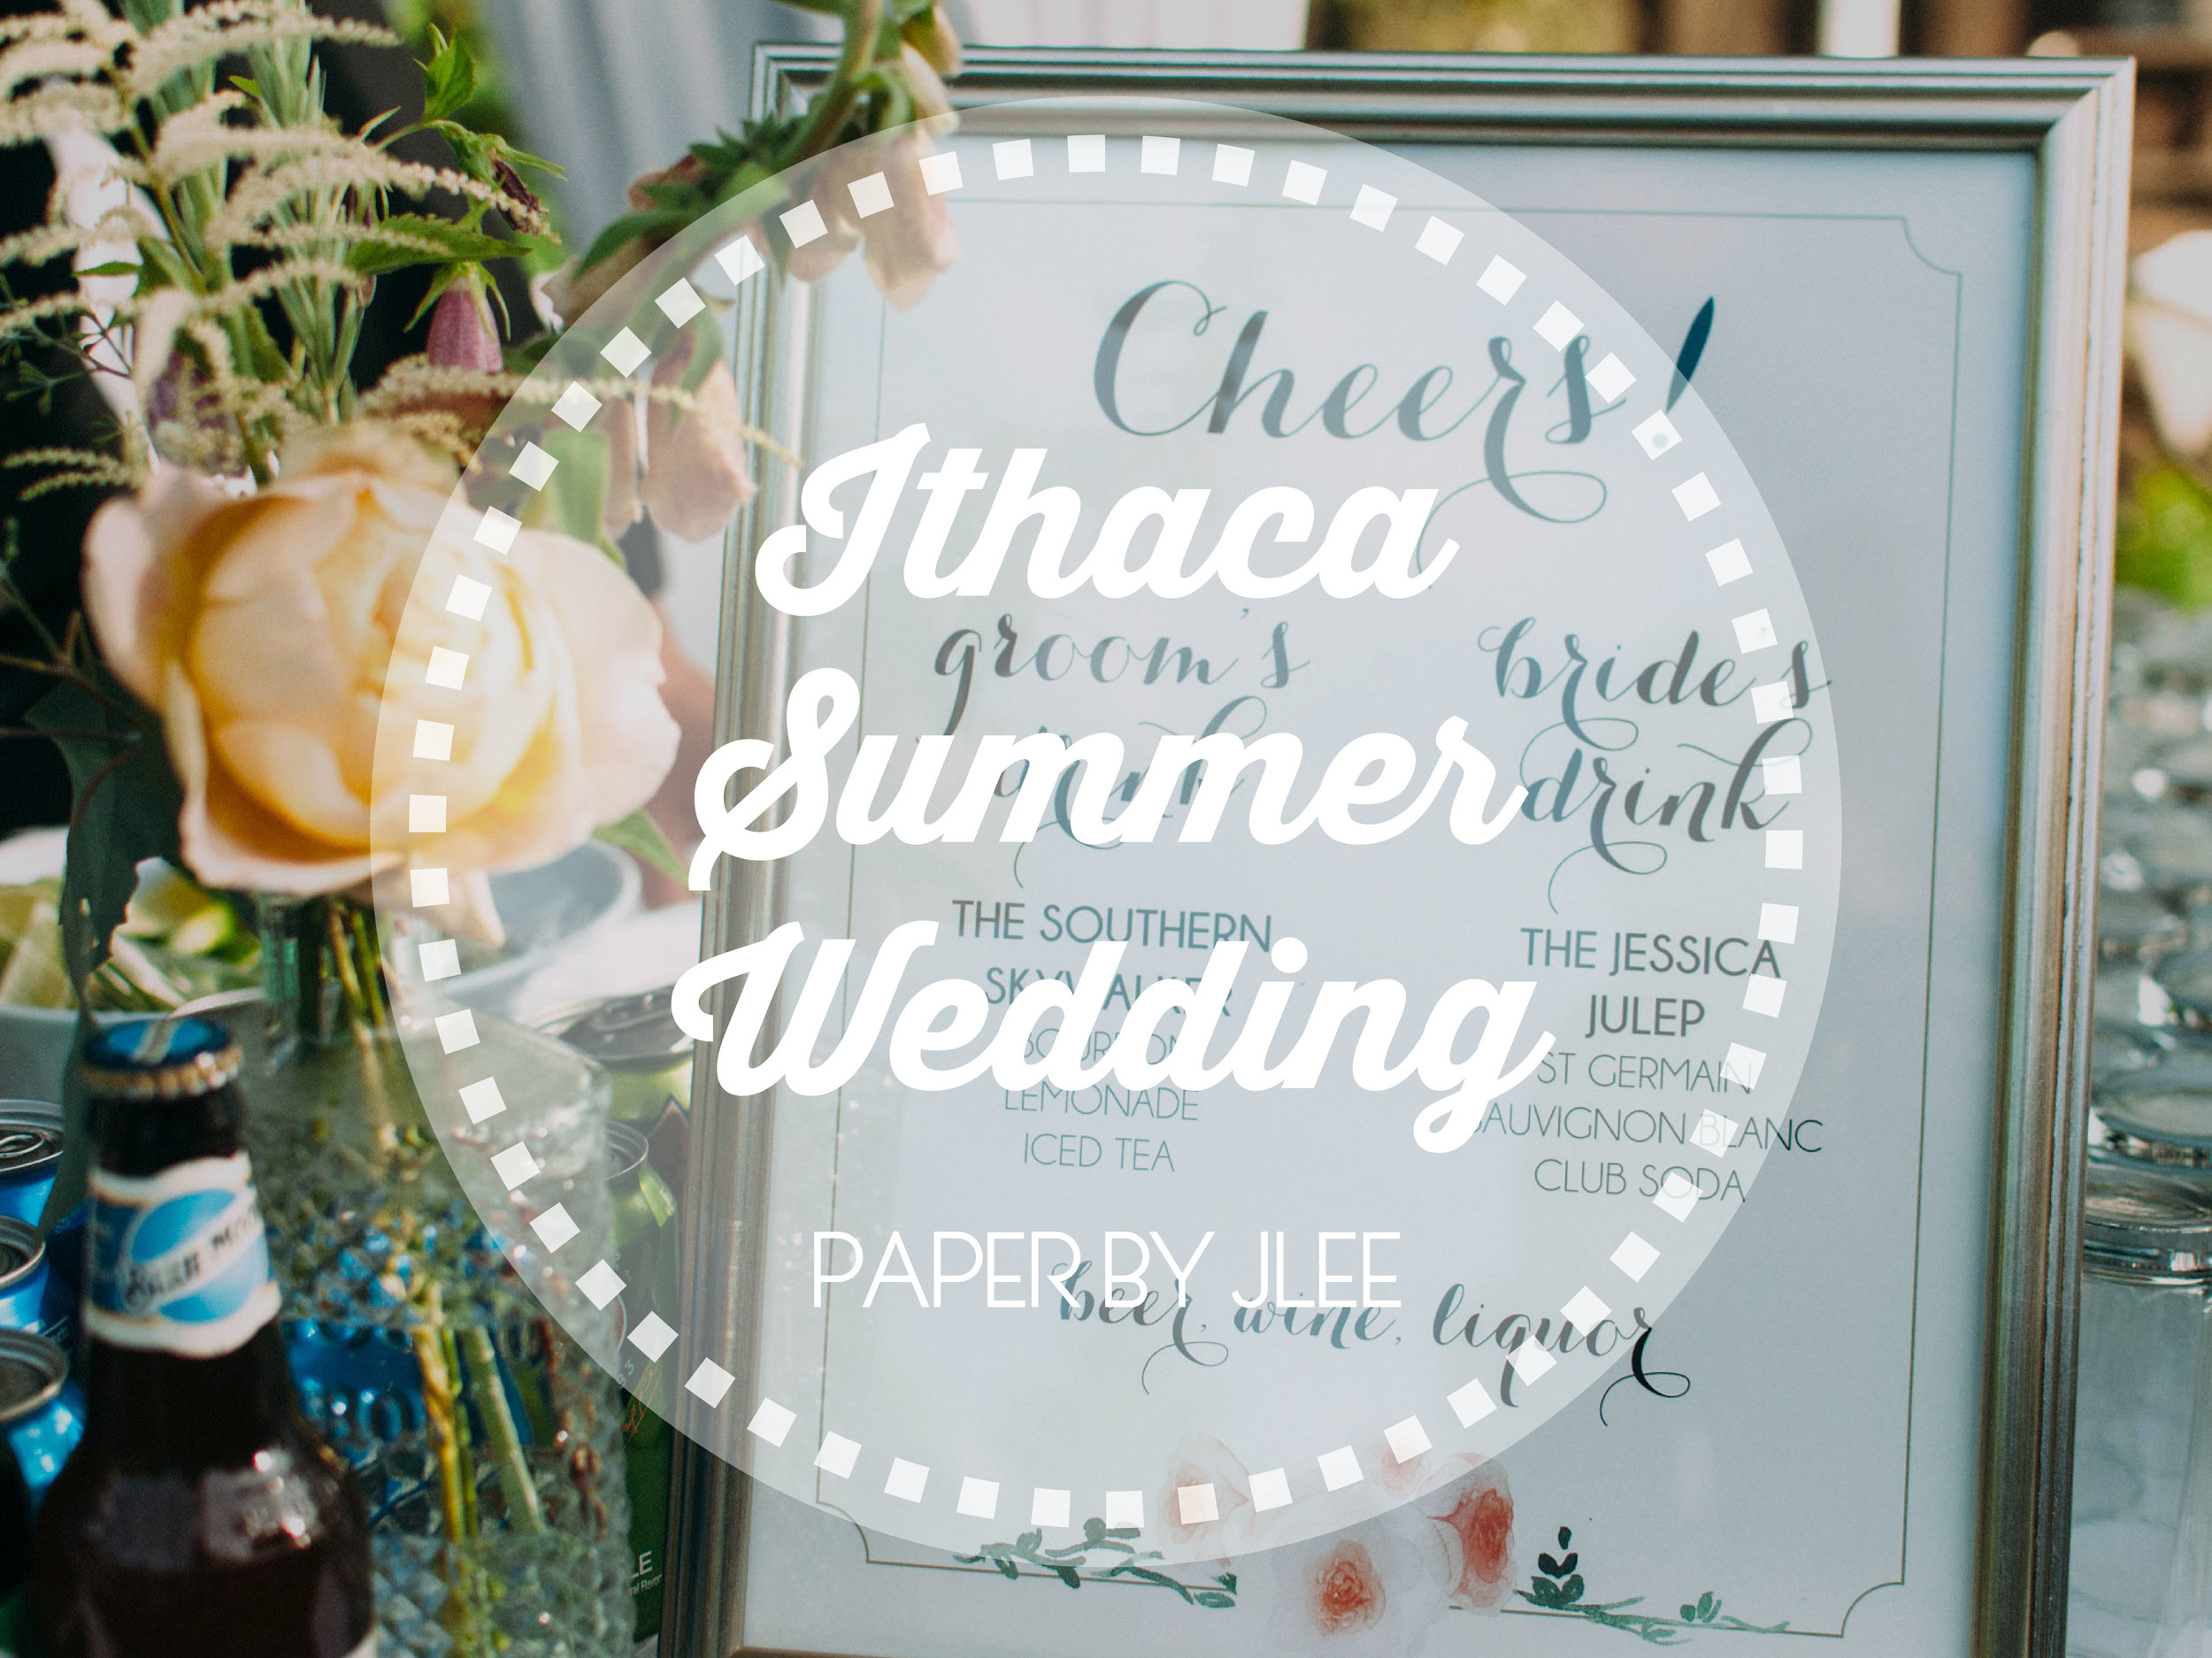 Paper by JLee: Ithaca Summer Wedding